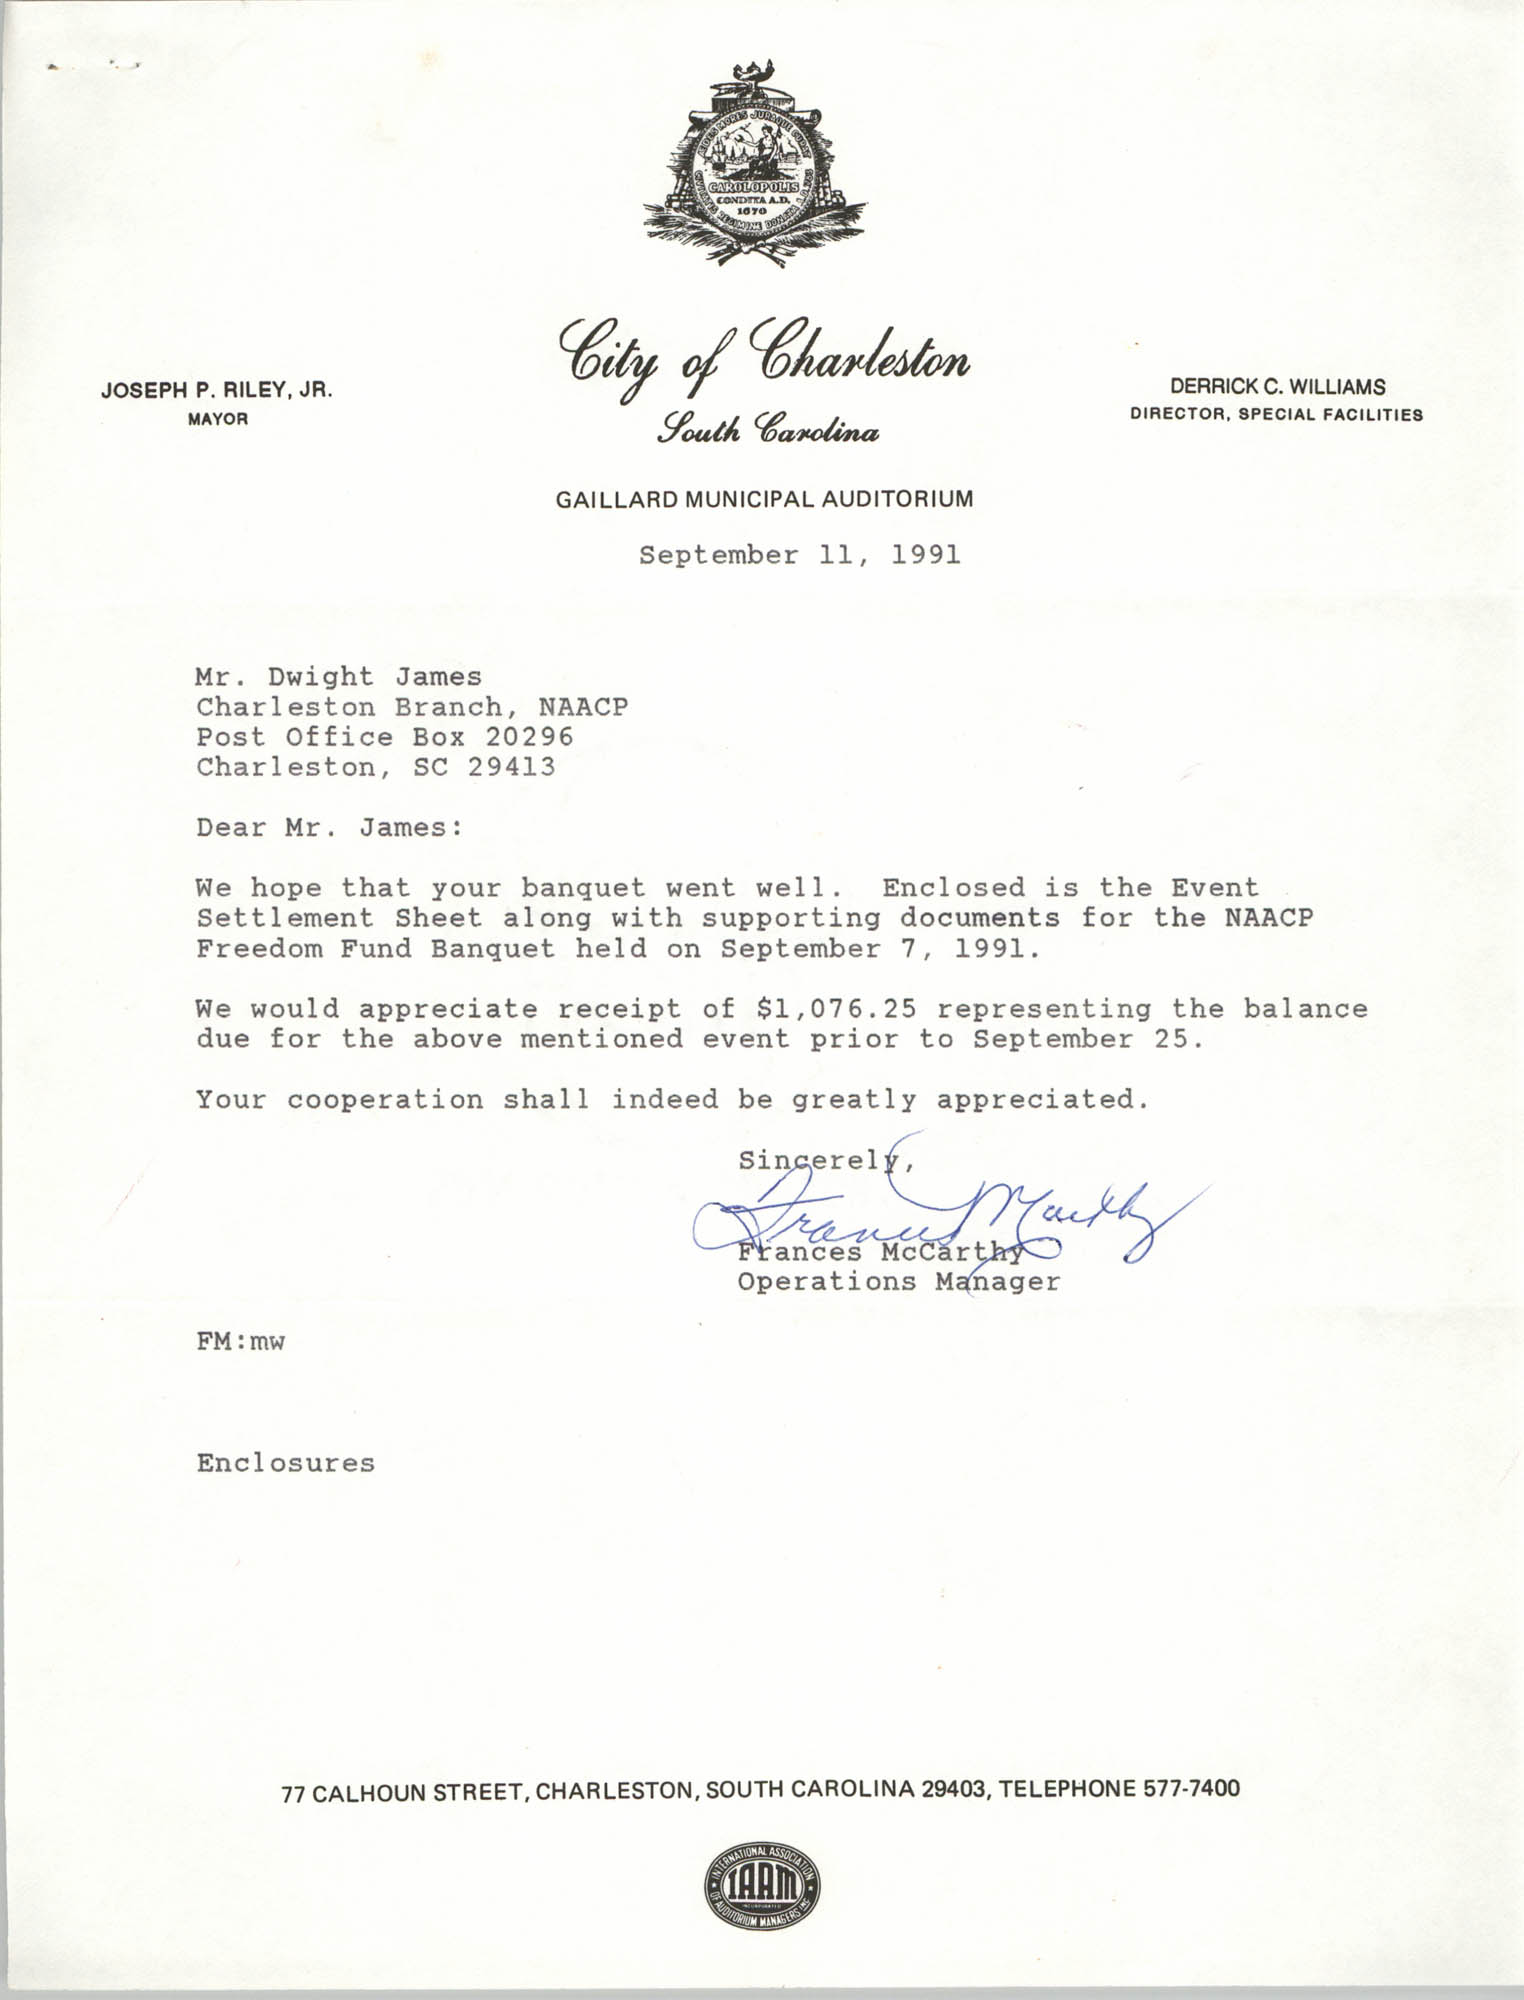 Letter from Frances McCarthy to Dwight James, September 11, 1991